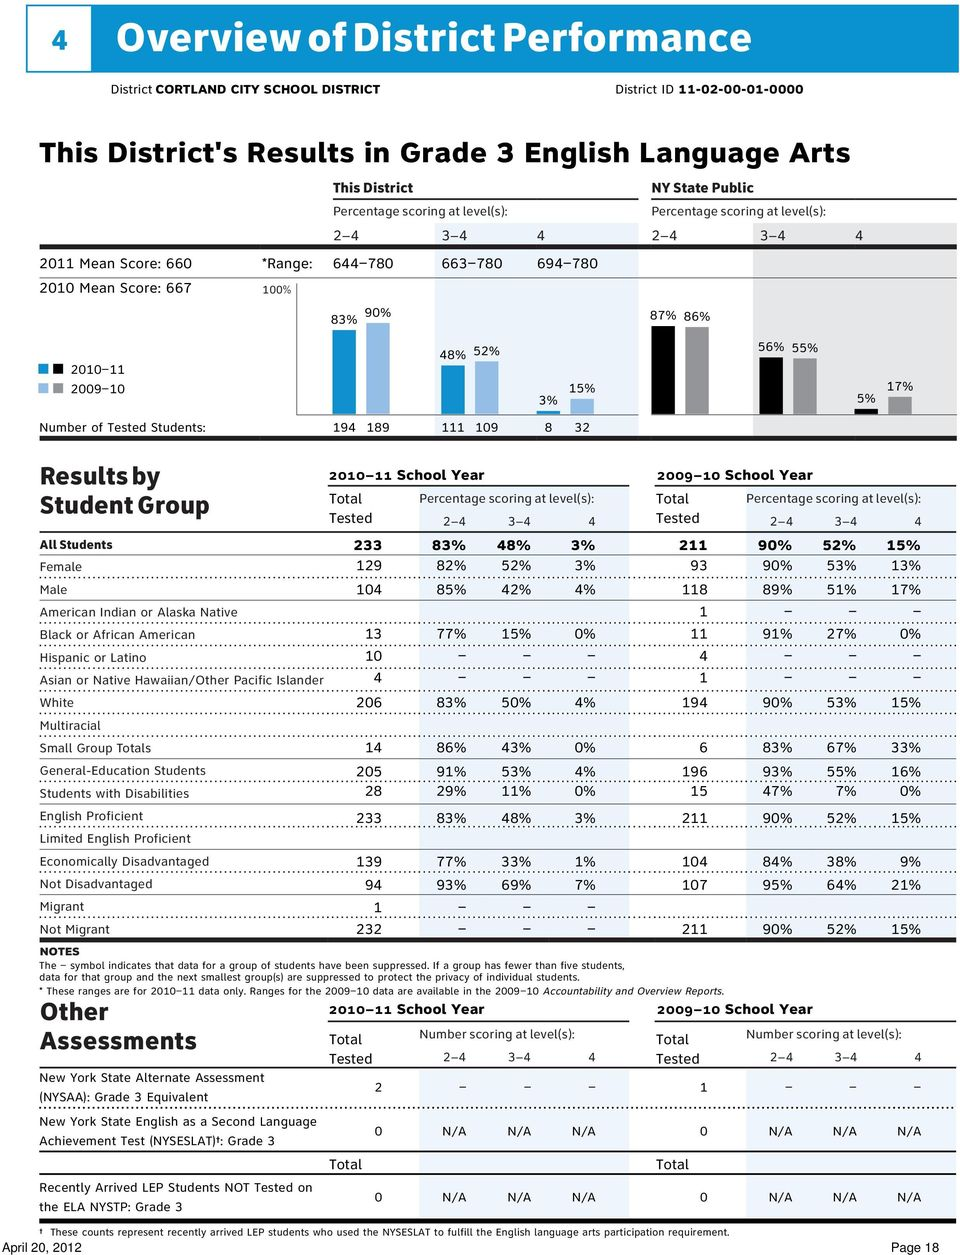 233 83% 48% 3% 2 9 52% 5% 29 82% 52% 3% 93 9 53% 3% Female Male Asian or Native Hawaiian/Other Pacific Islander Small Group s General-Education Students English Proficient Not Disadvantaged Migrant